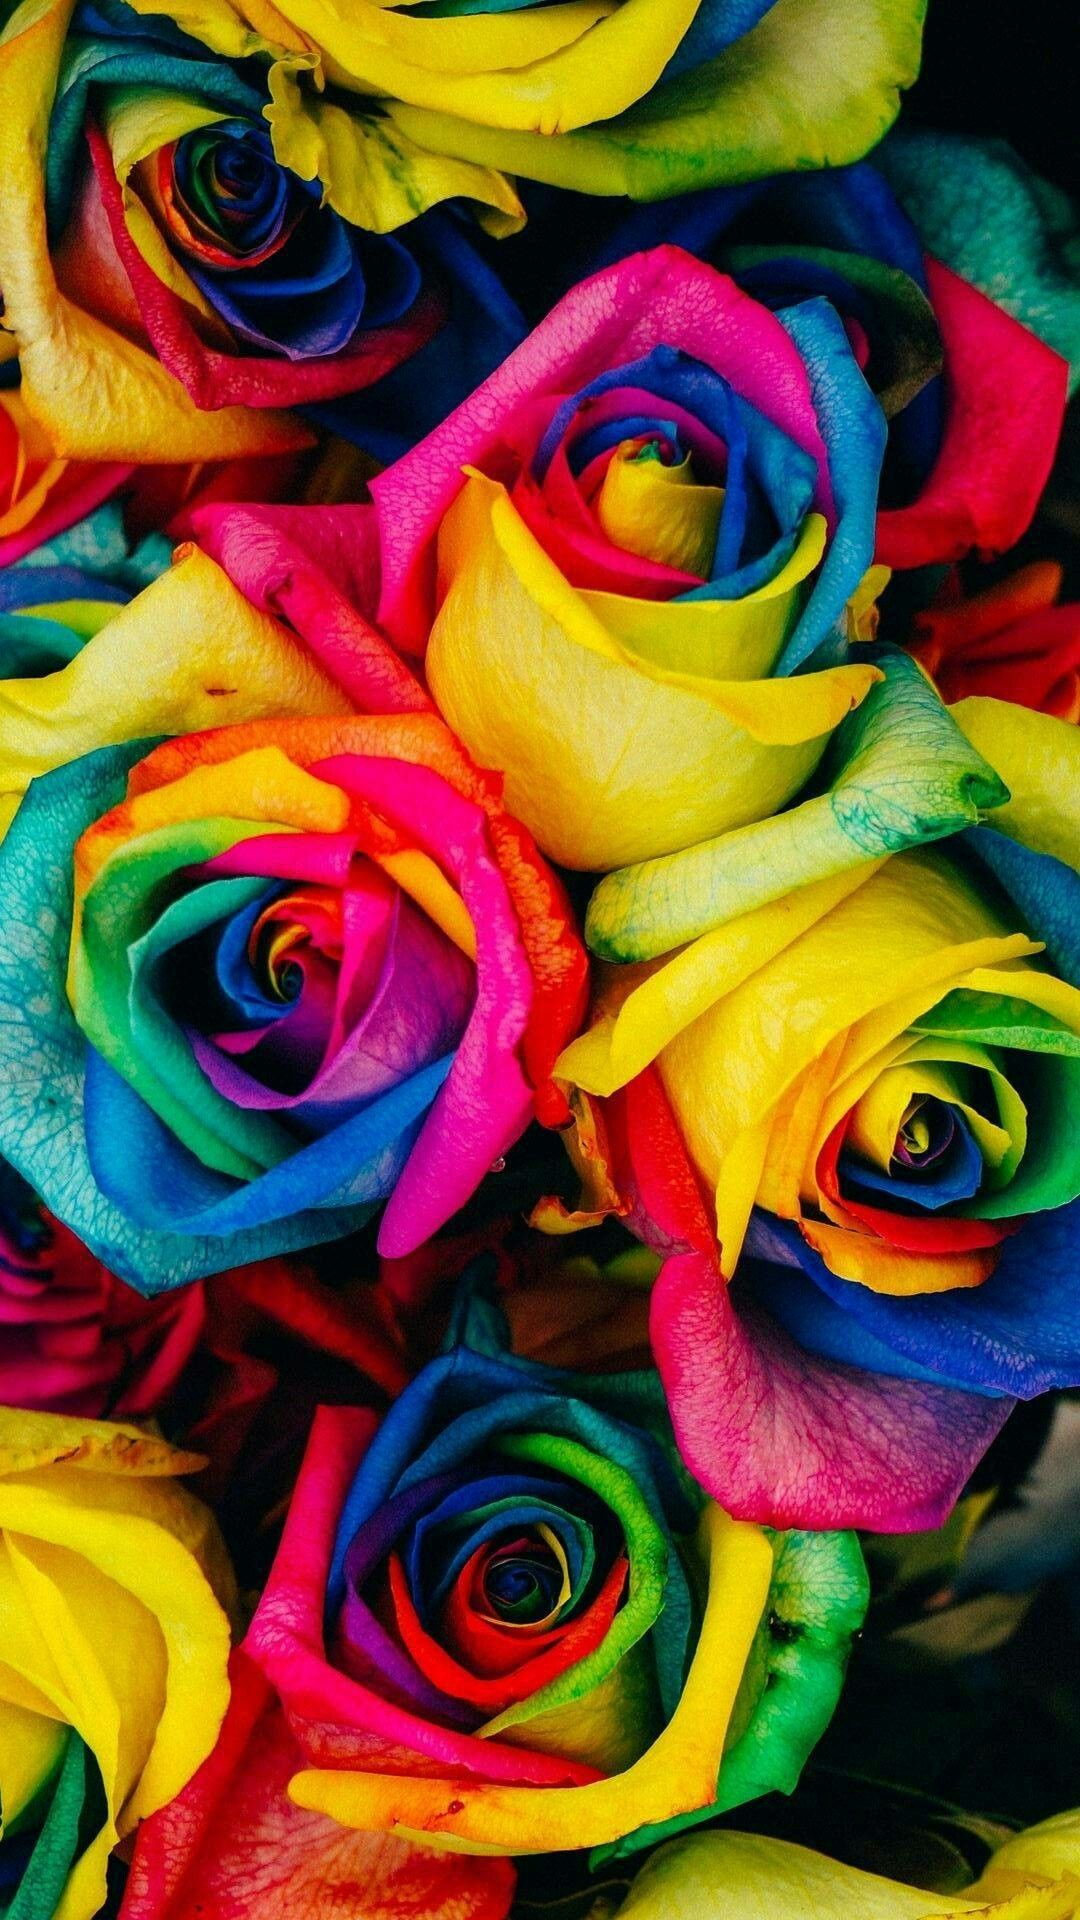 Pin By Lisa Green On Flowers With Images Rainbow Roses Rose